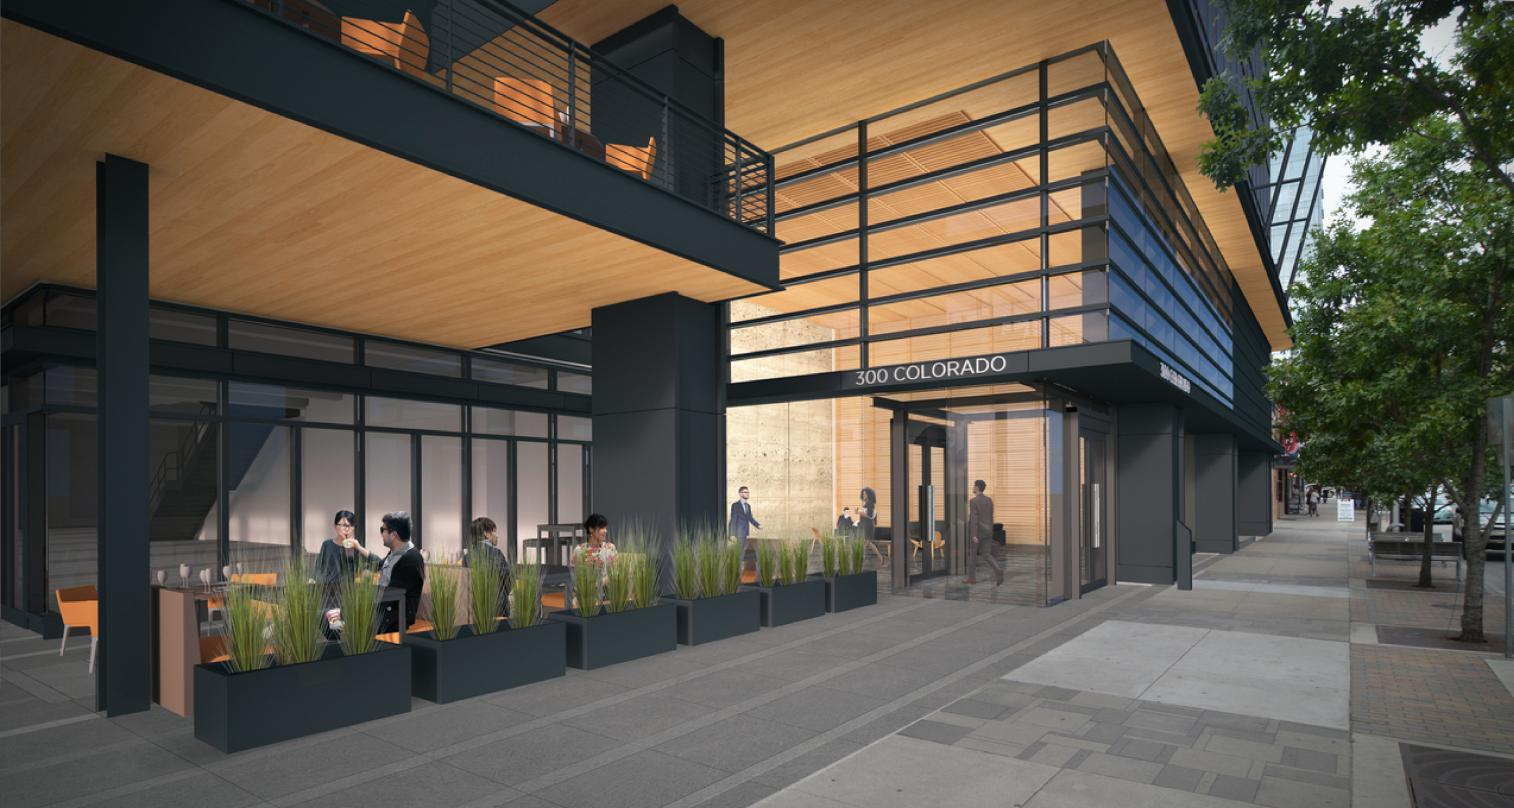 Pedestrian level view of the dining area outside 300 Colorado in downtown Austin, incorporated into our design proposal.